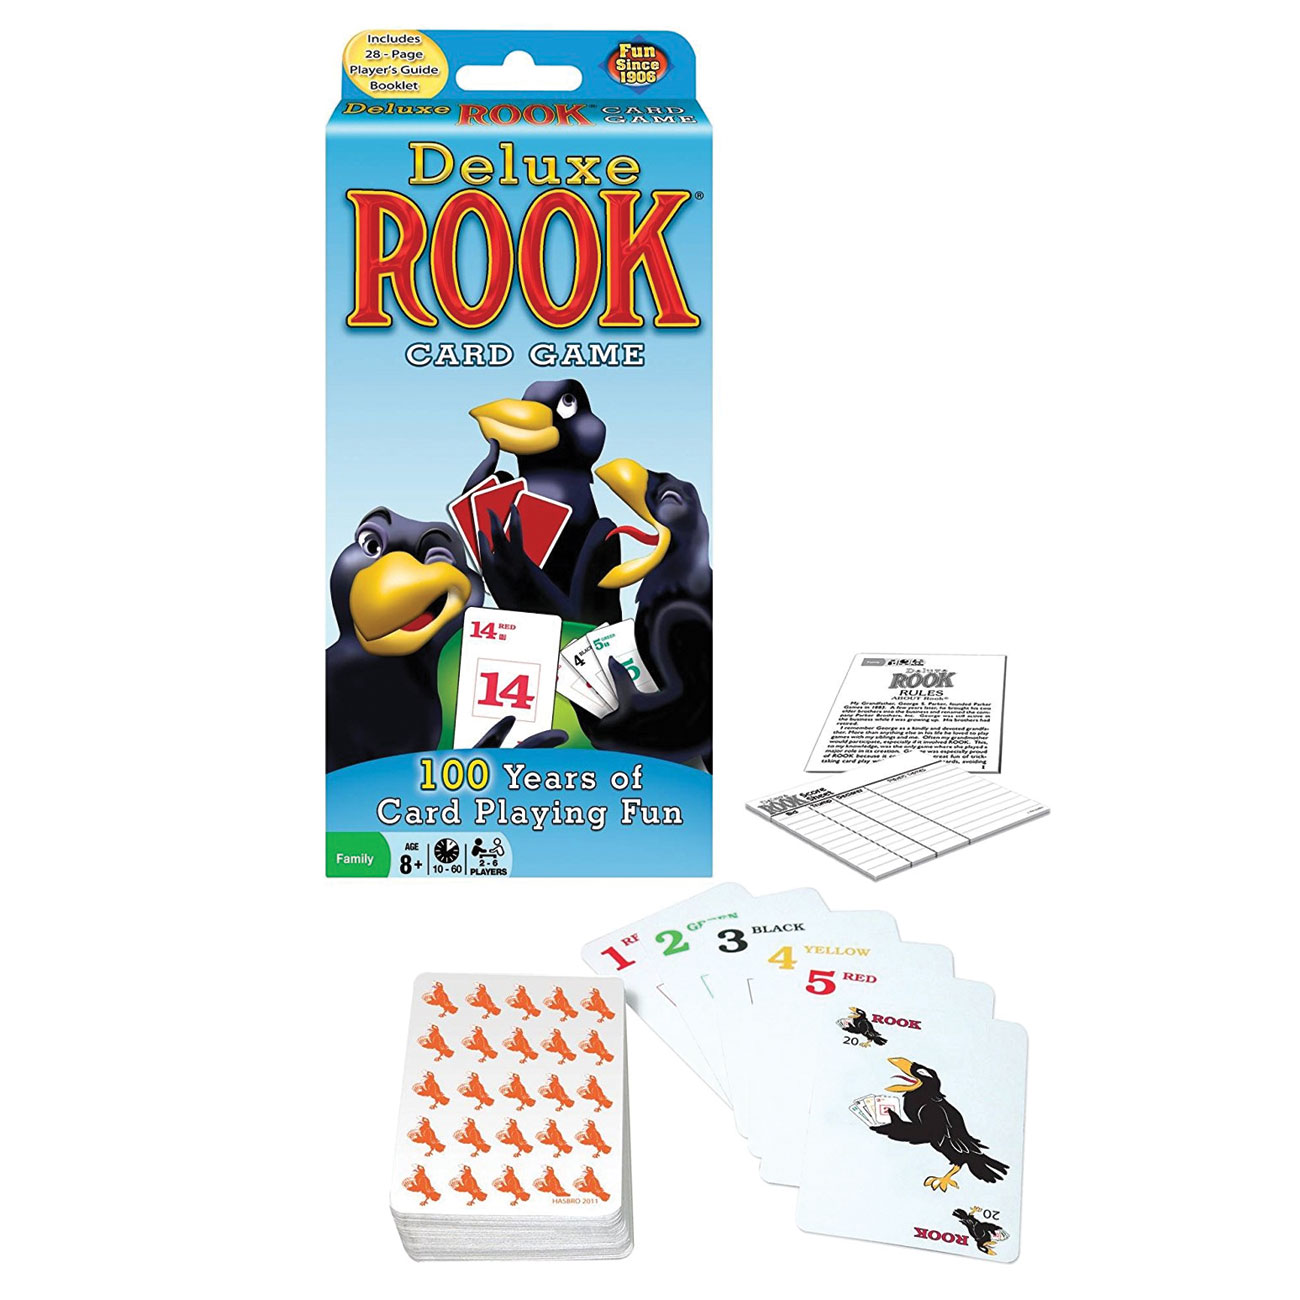 Braille - Rook Cards Price: $17.95